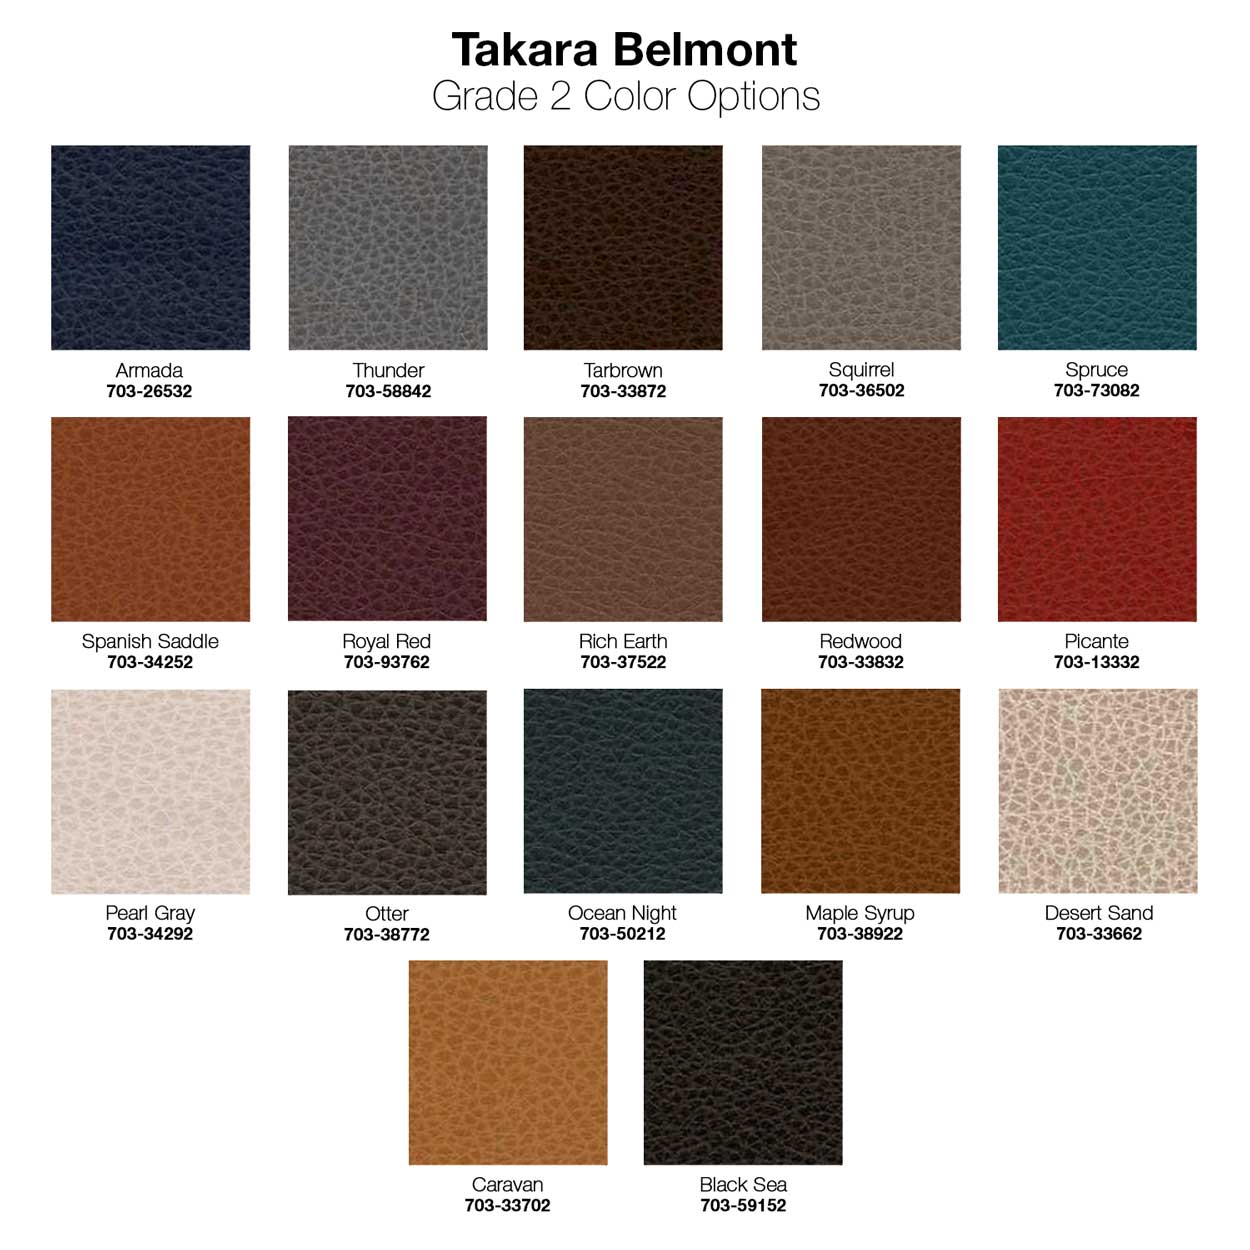 Takara Belmont Strip Tease Styling Chair alternative product image 6